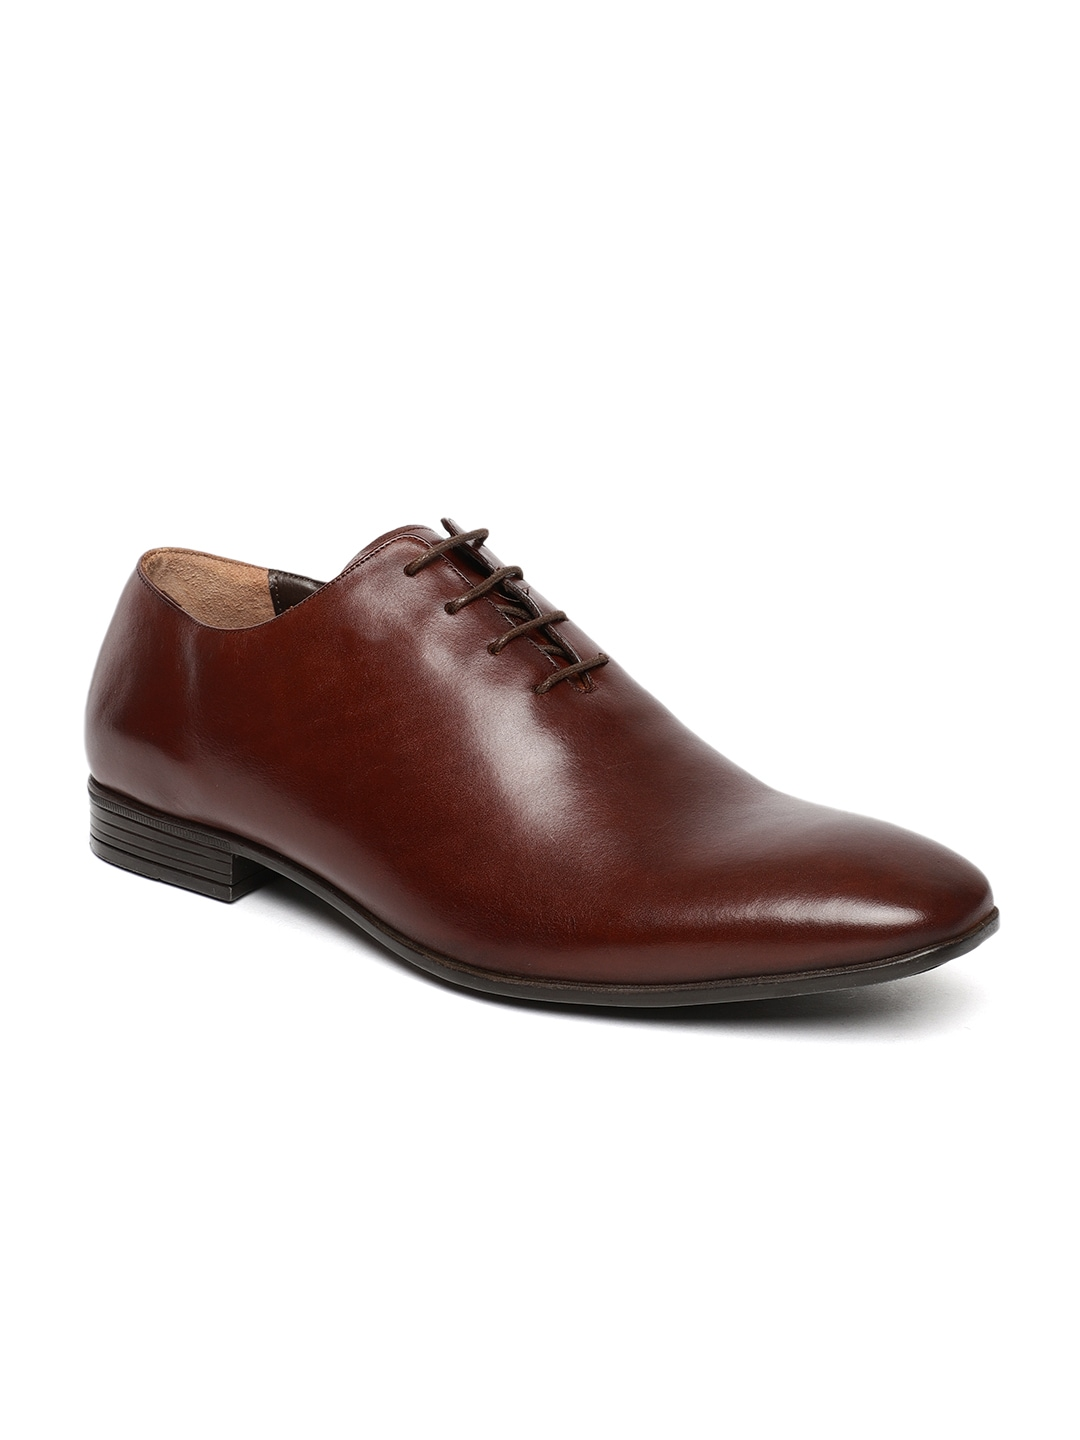 2640a2b079f Leather Formal Shoes - Buy Leather Formal Shoes Online